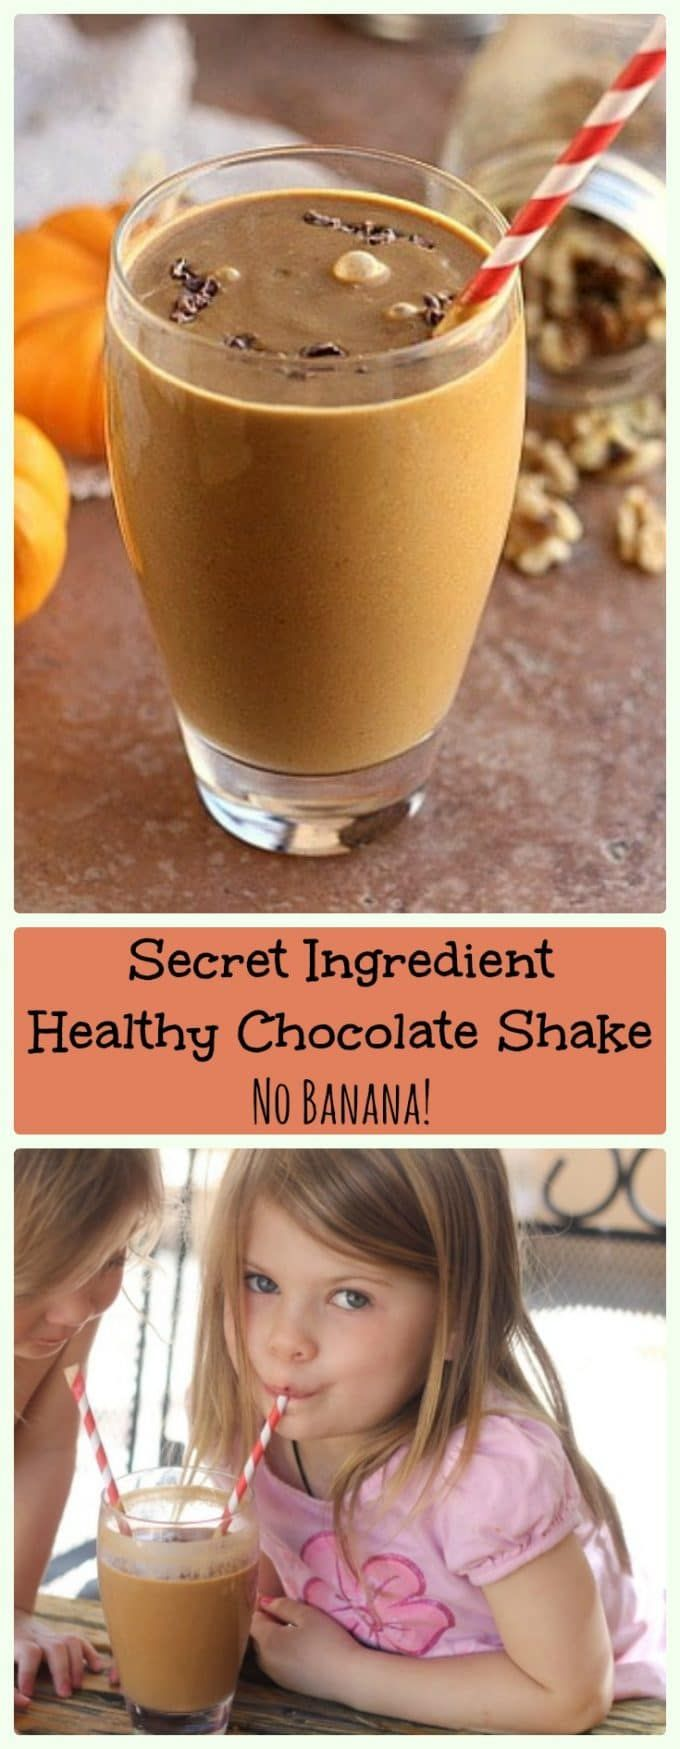 Secret Ingredient Healthy Chocolate Shake (Vegan, Paleo) #healthychocolateshakes